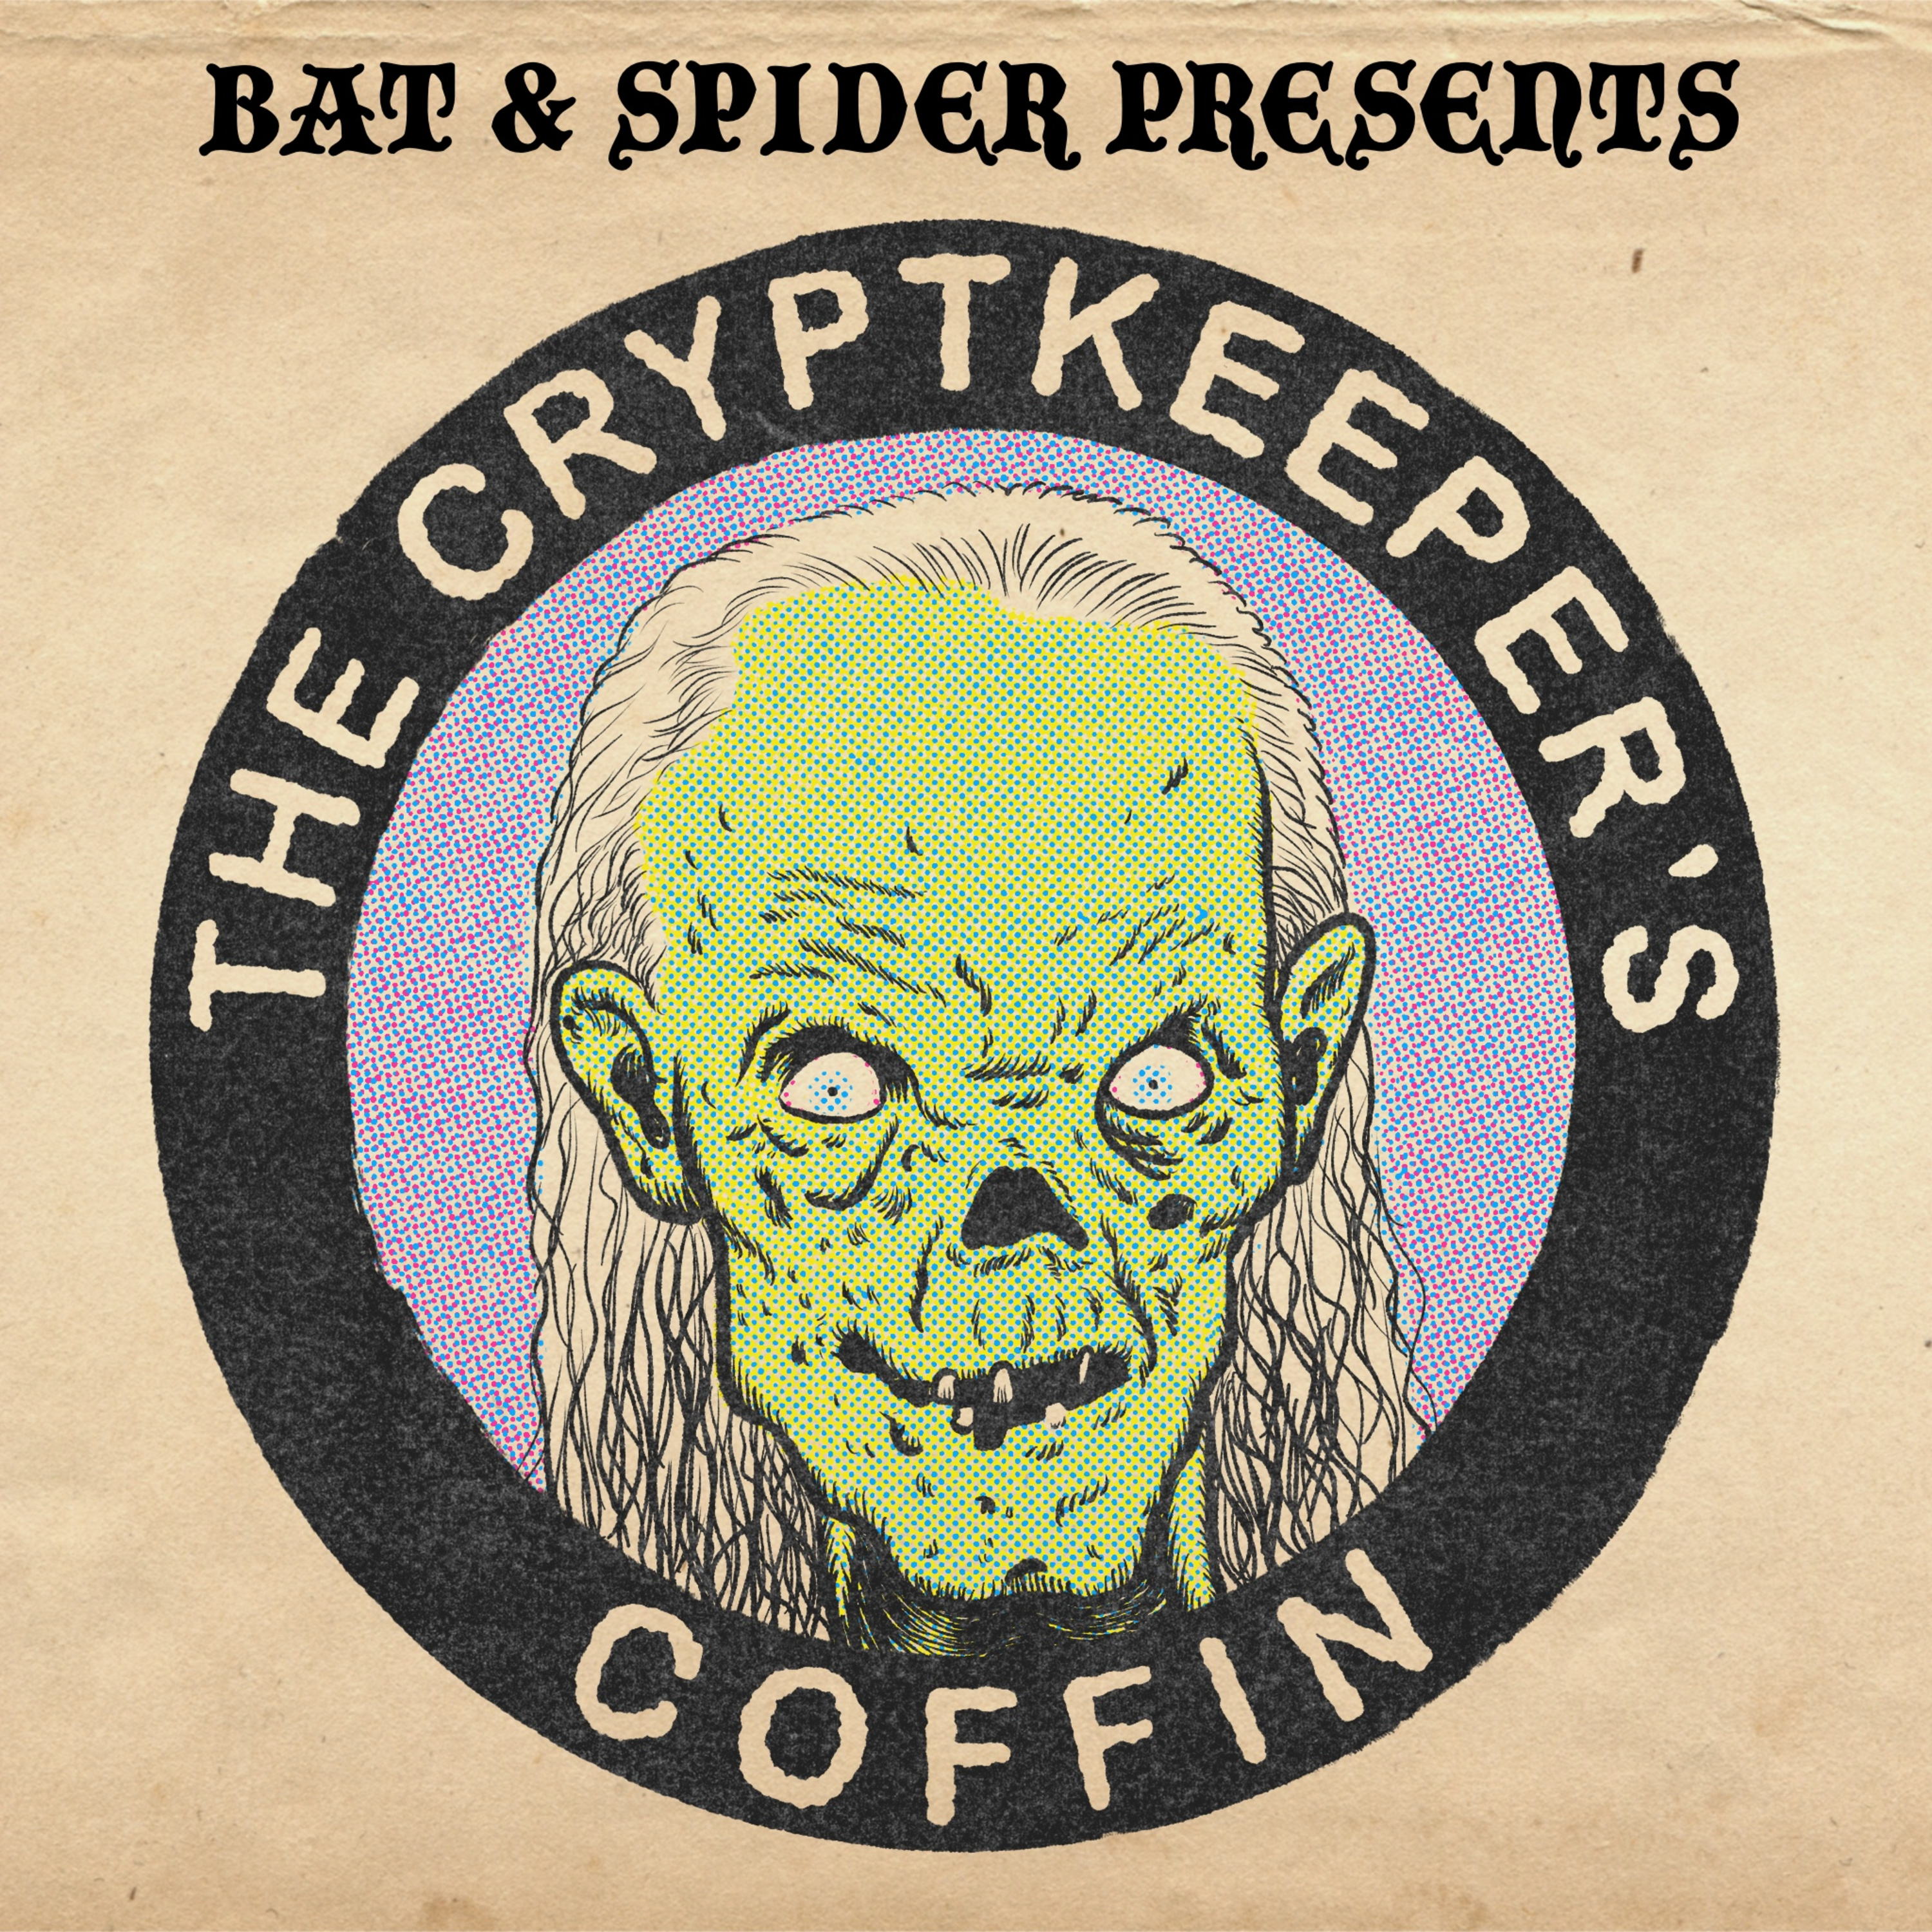 The Crypt Keeper's Coffin 002 - All Through the House